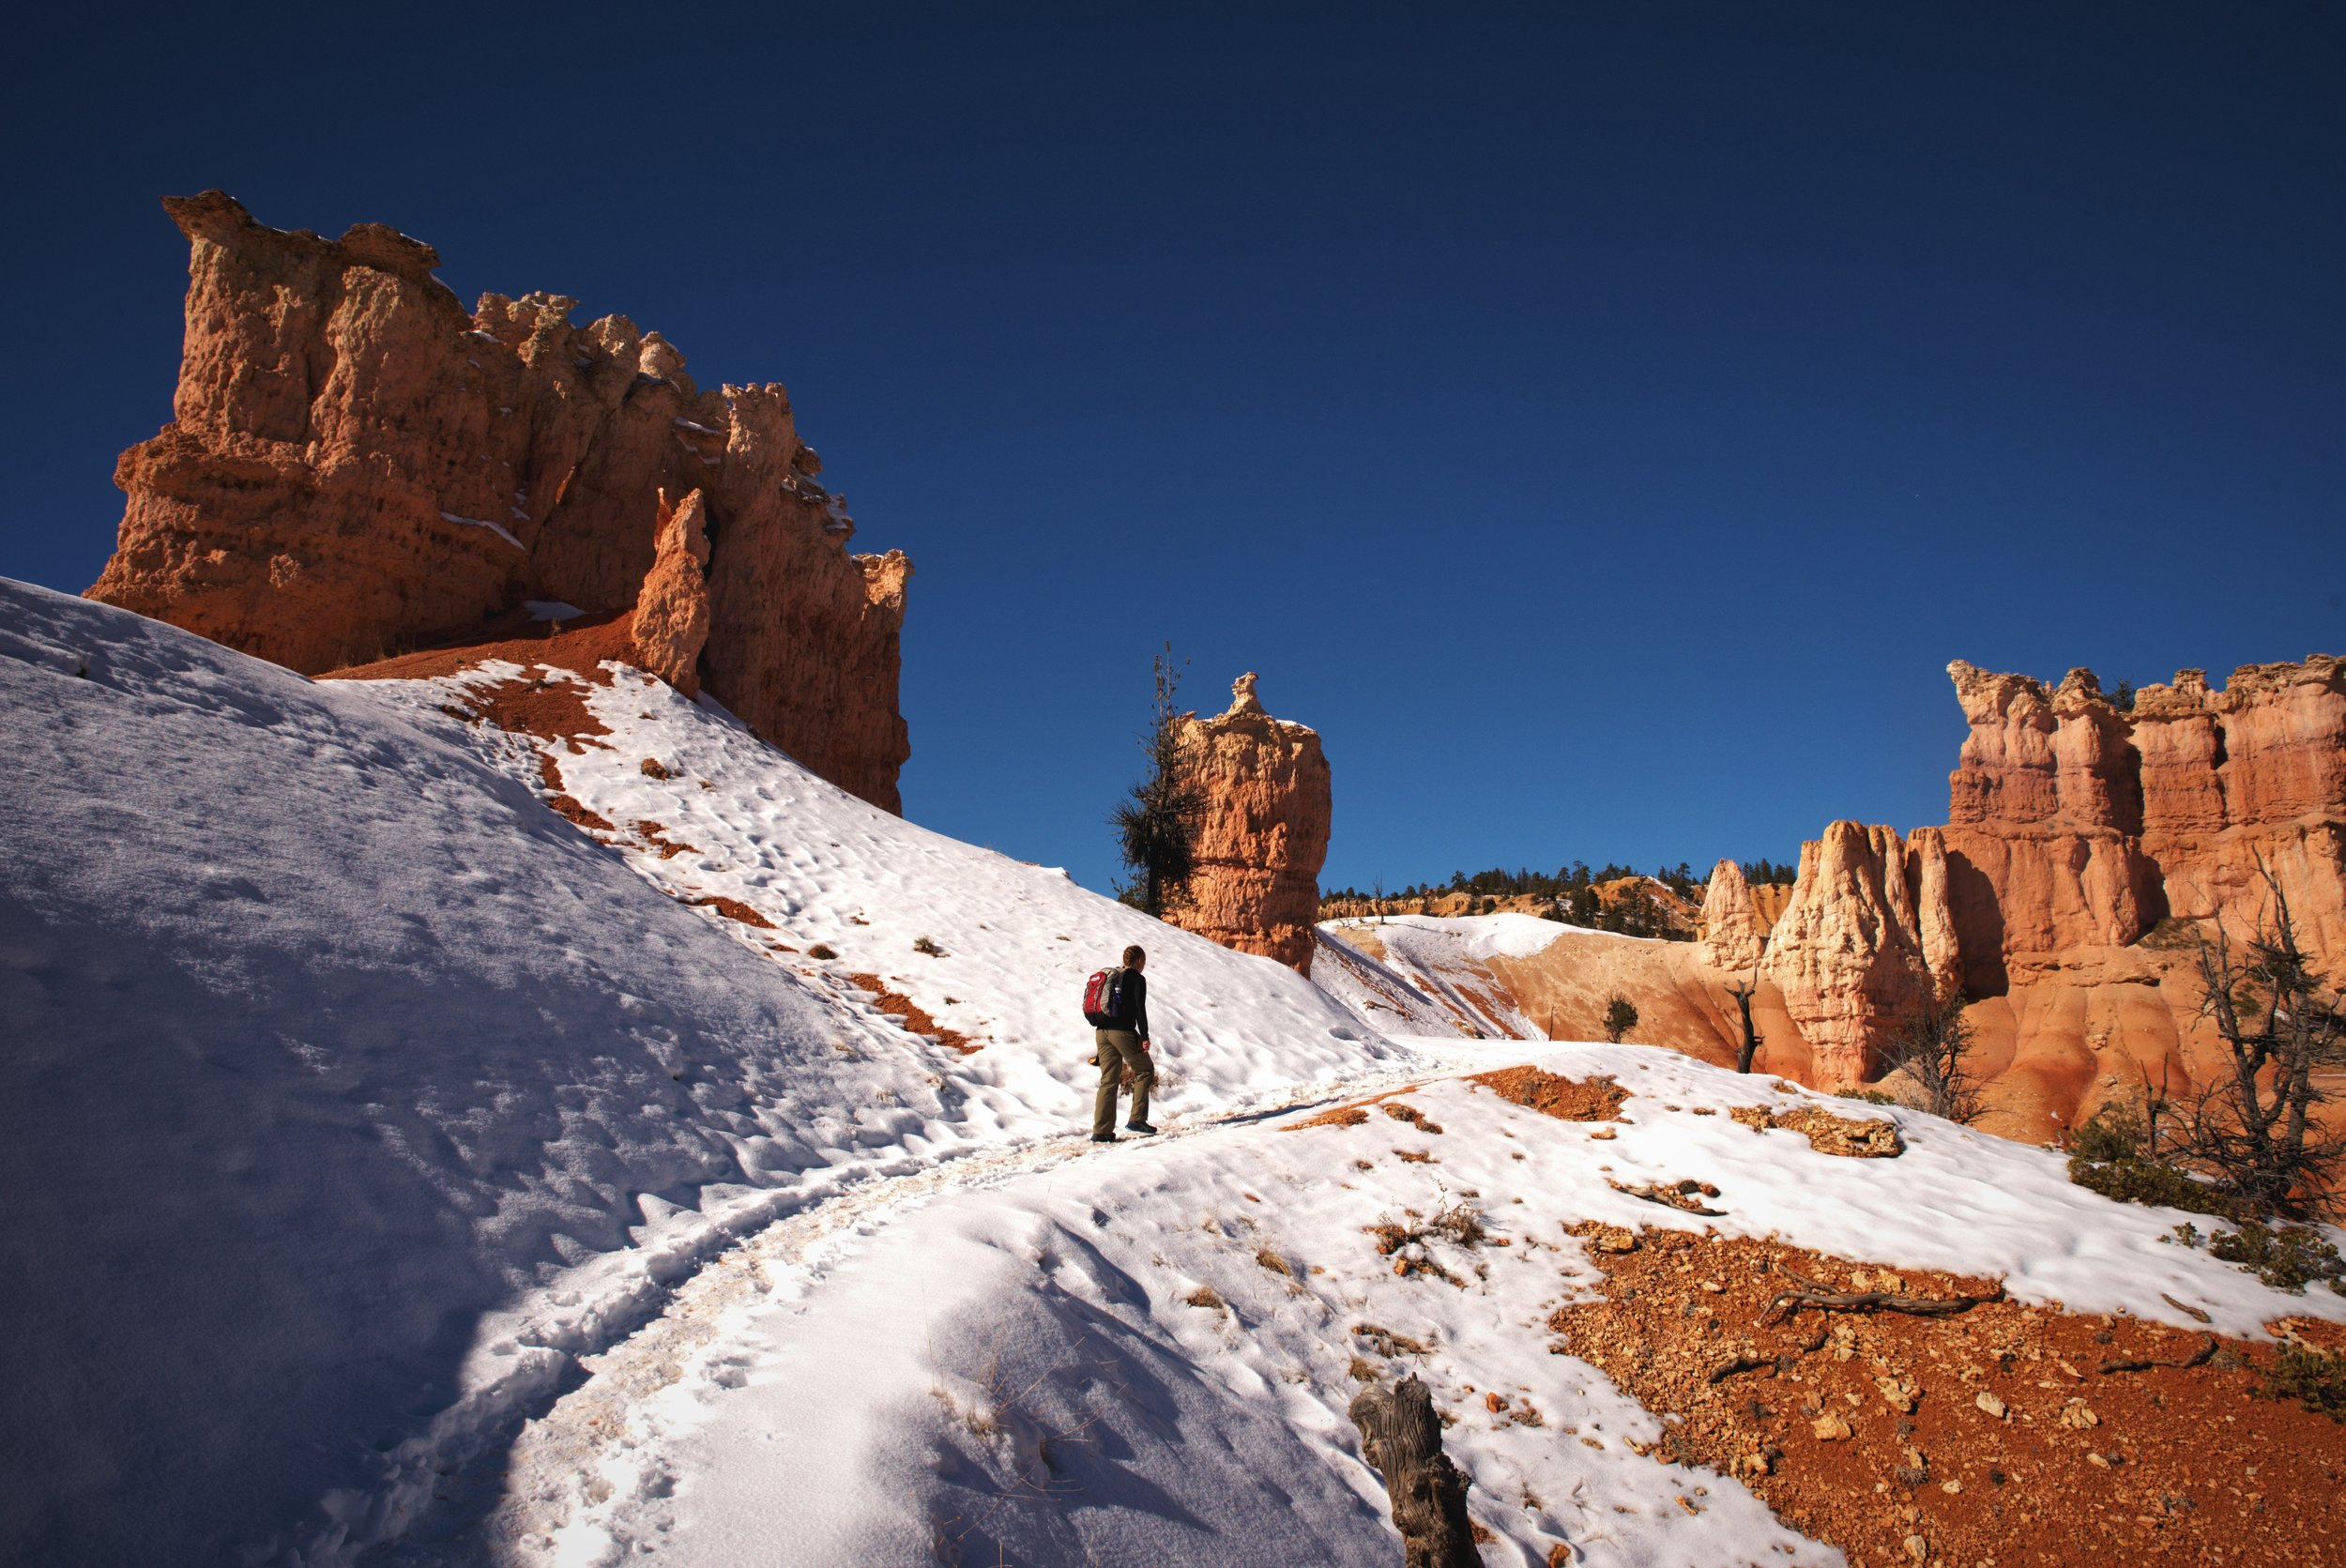 You might start this hike cold, but the long hike out of Bryce Canyon will get you warmed up.